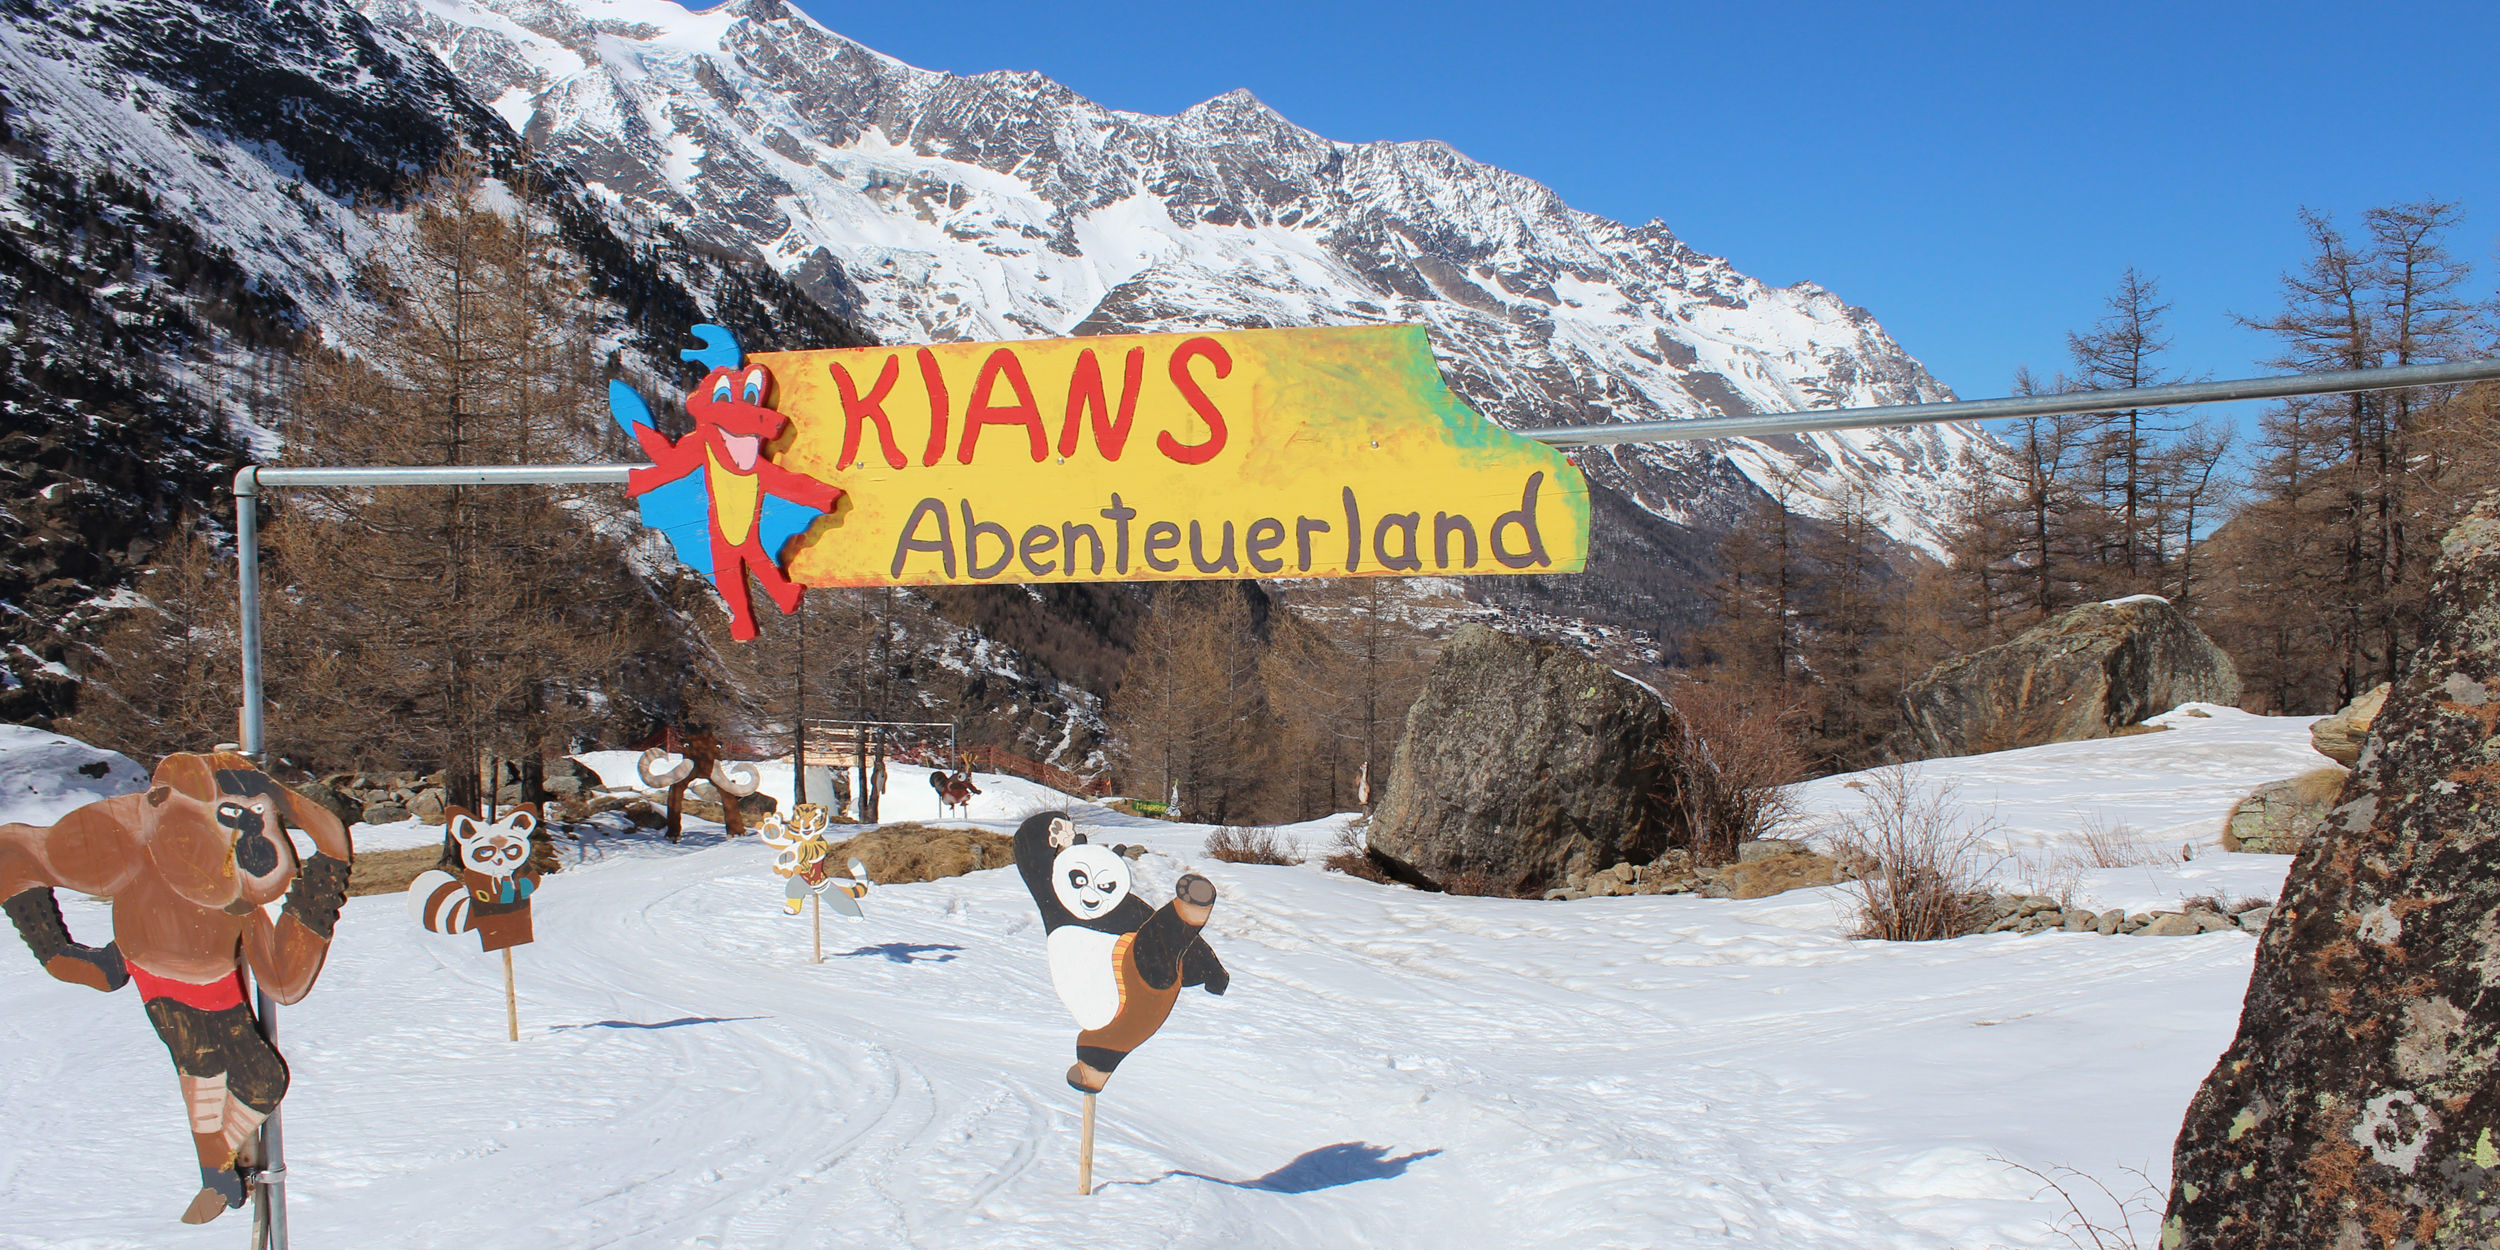 Kian's Adventure land - Free Republic of Holidays, Saas-Fee